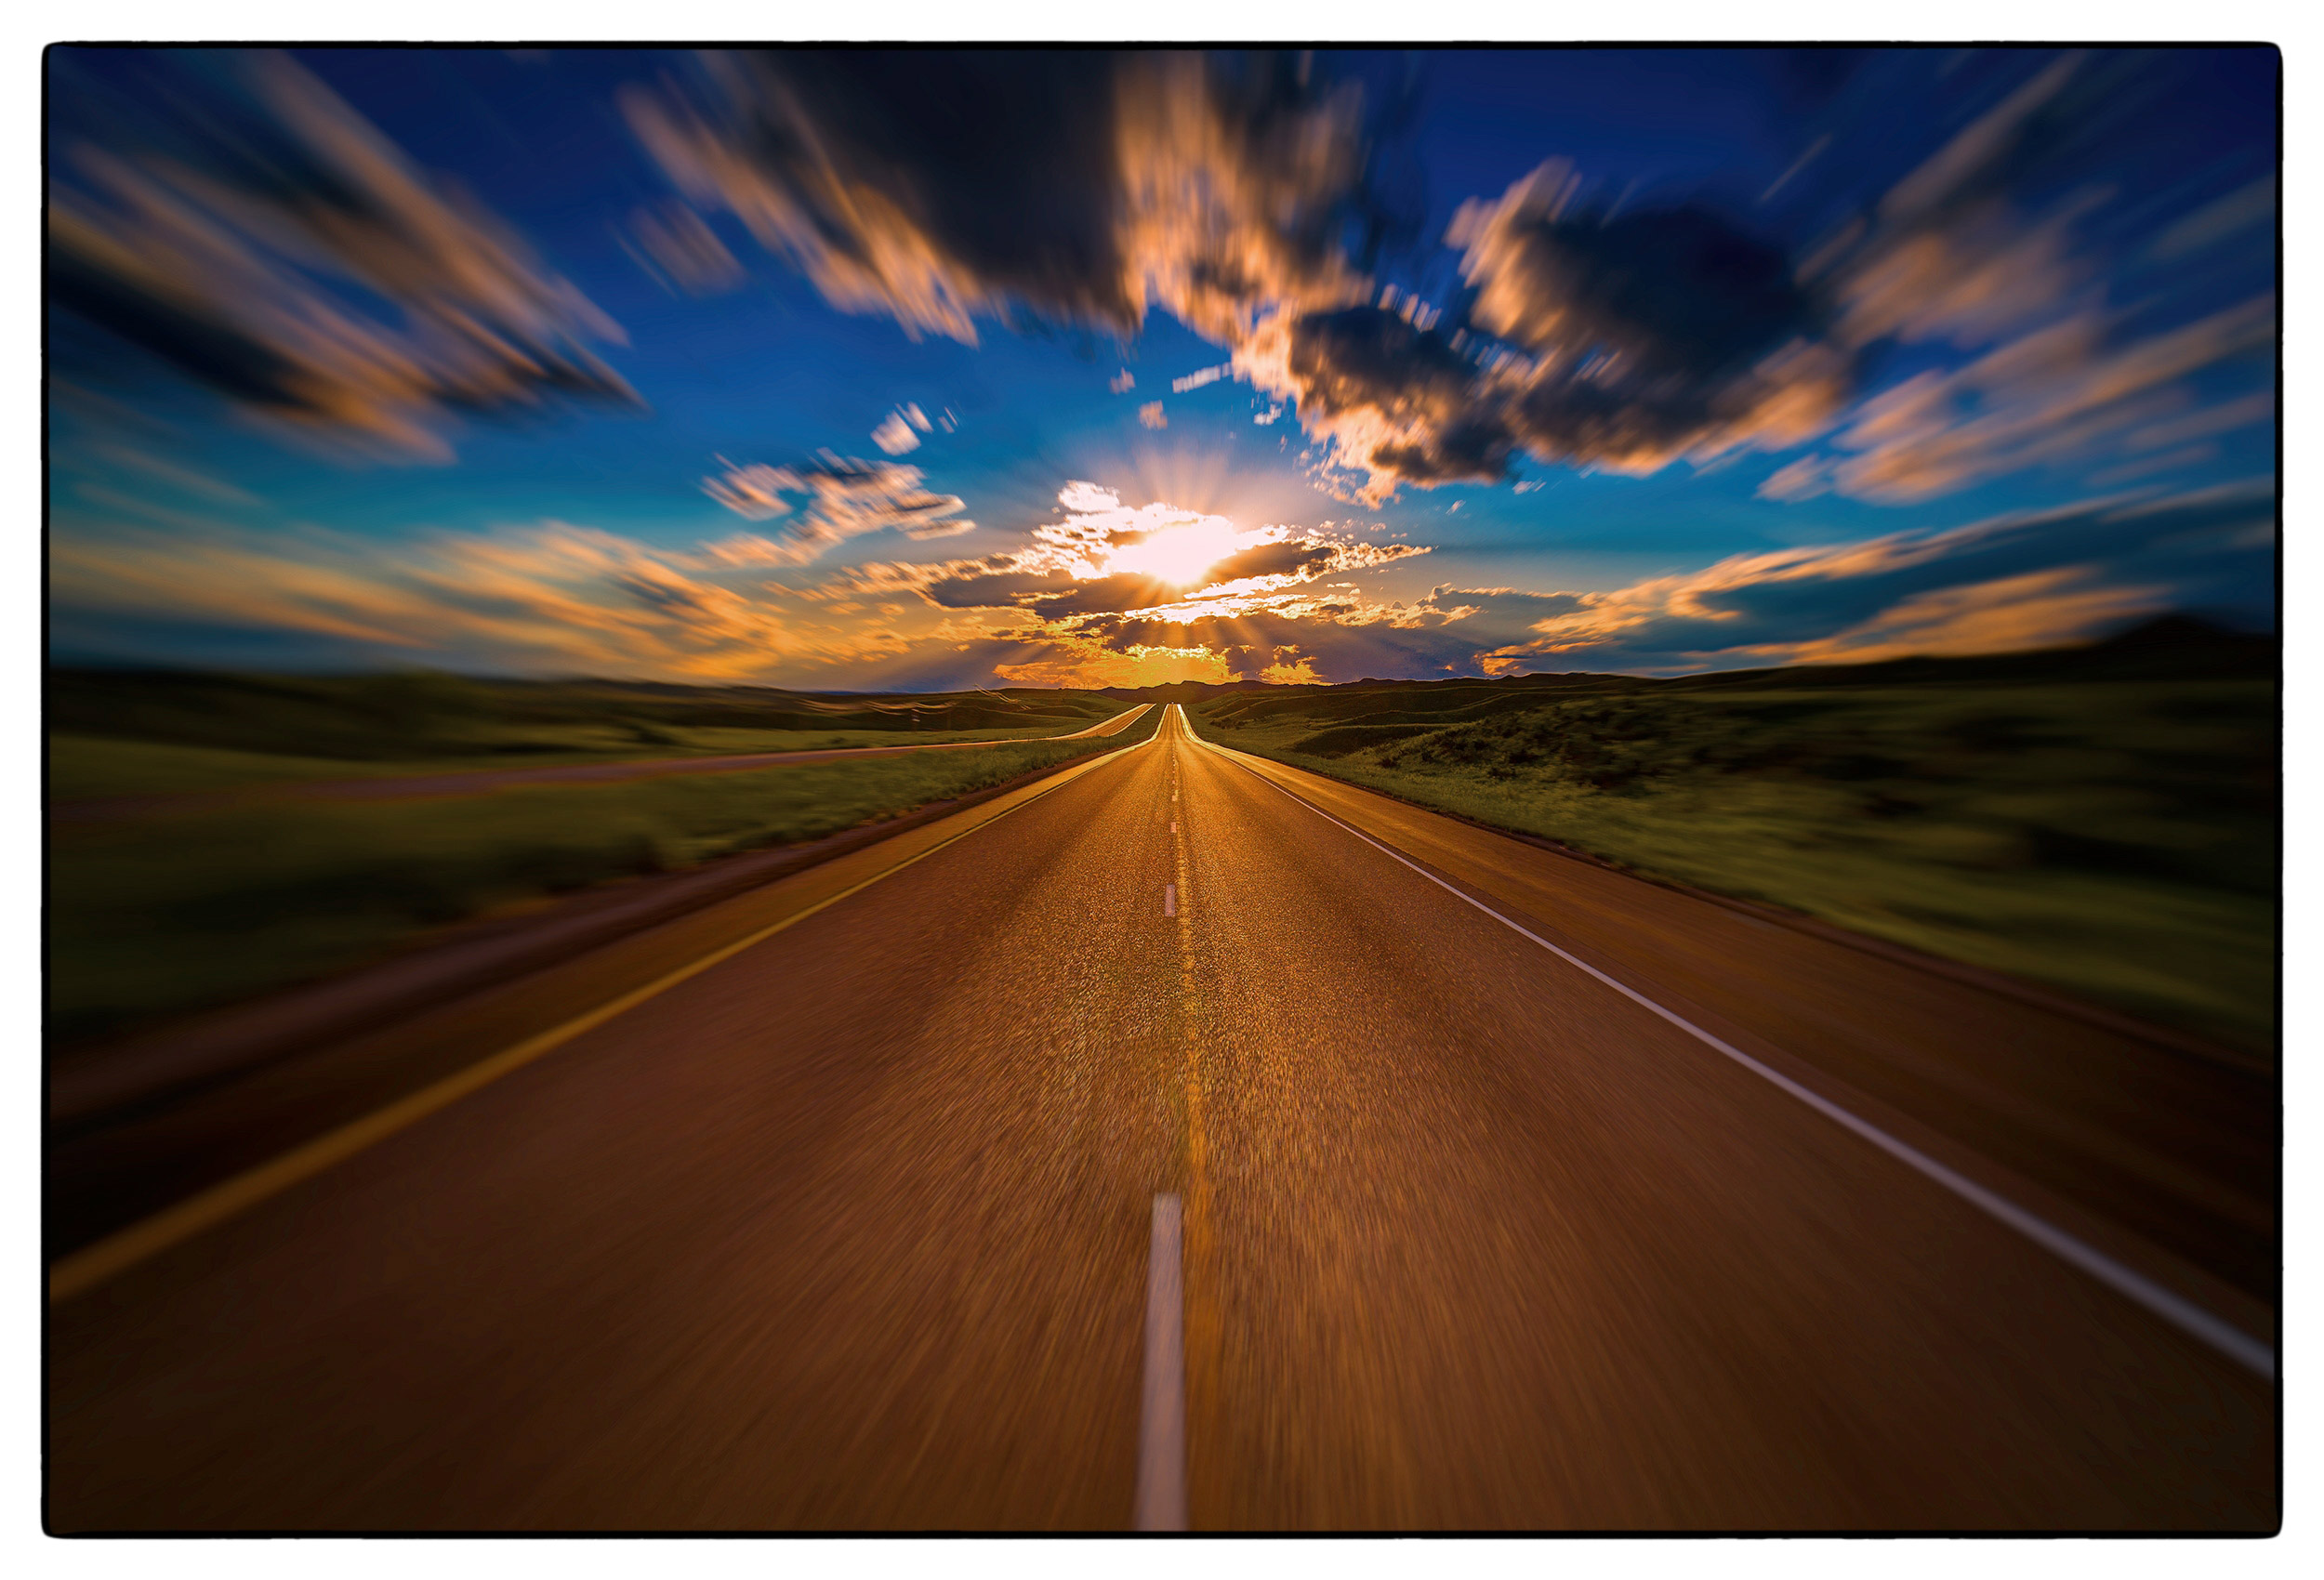 a-brilliant-sun-sets-over-the-i90-highway-in-wyoming-usa